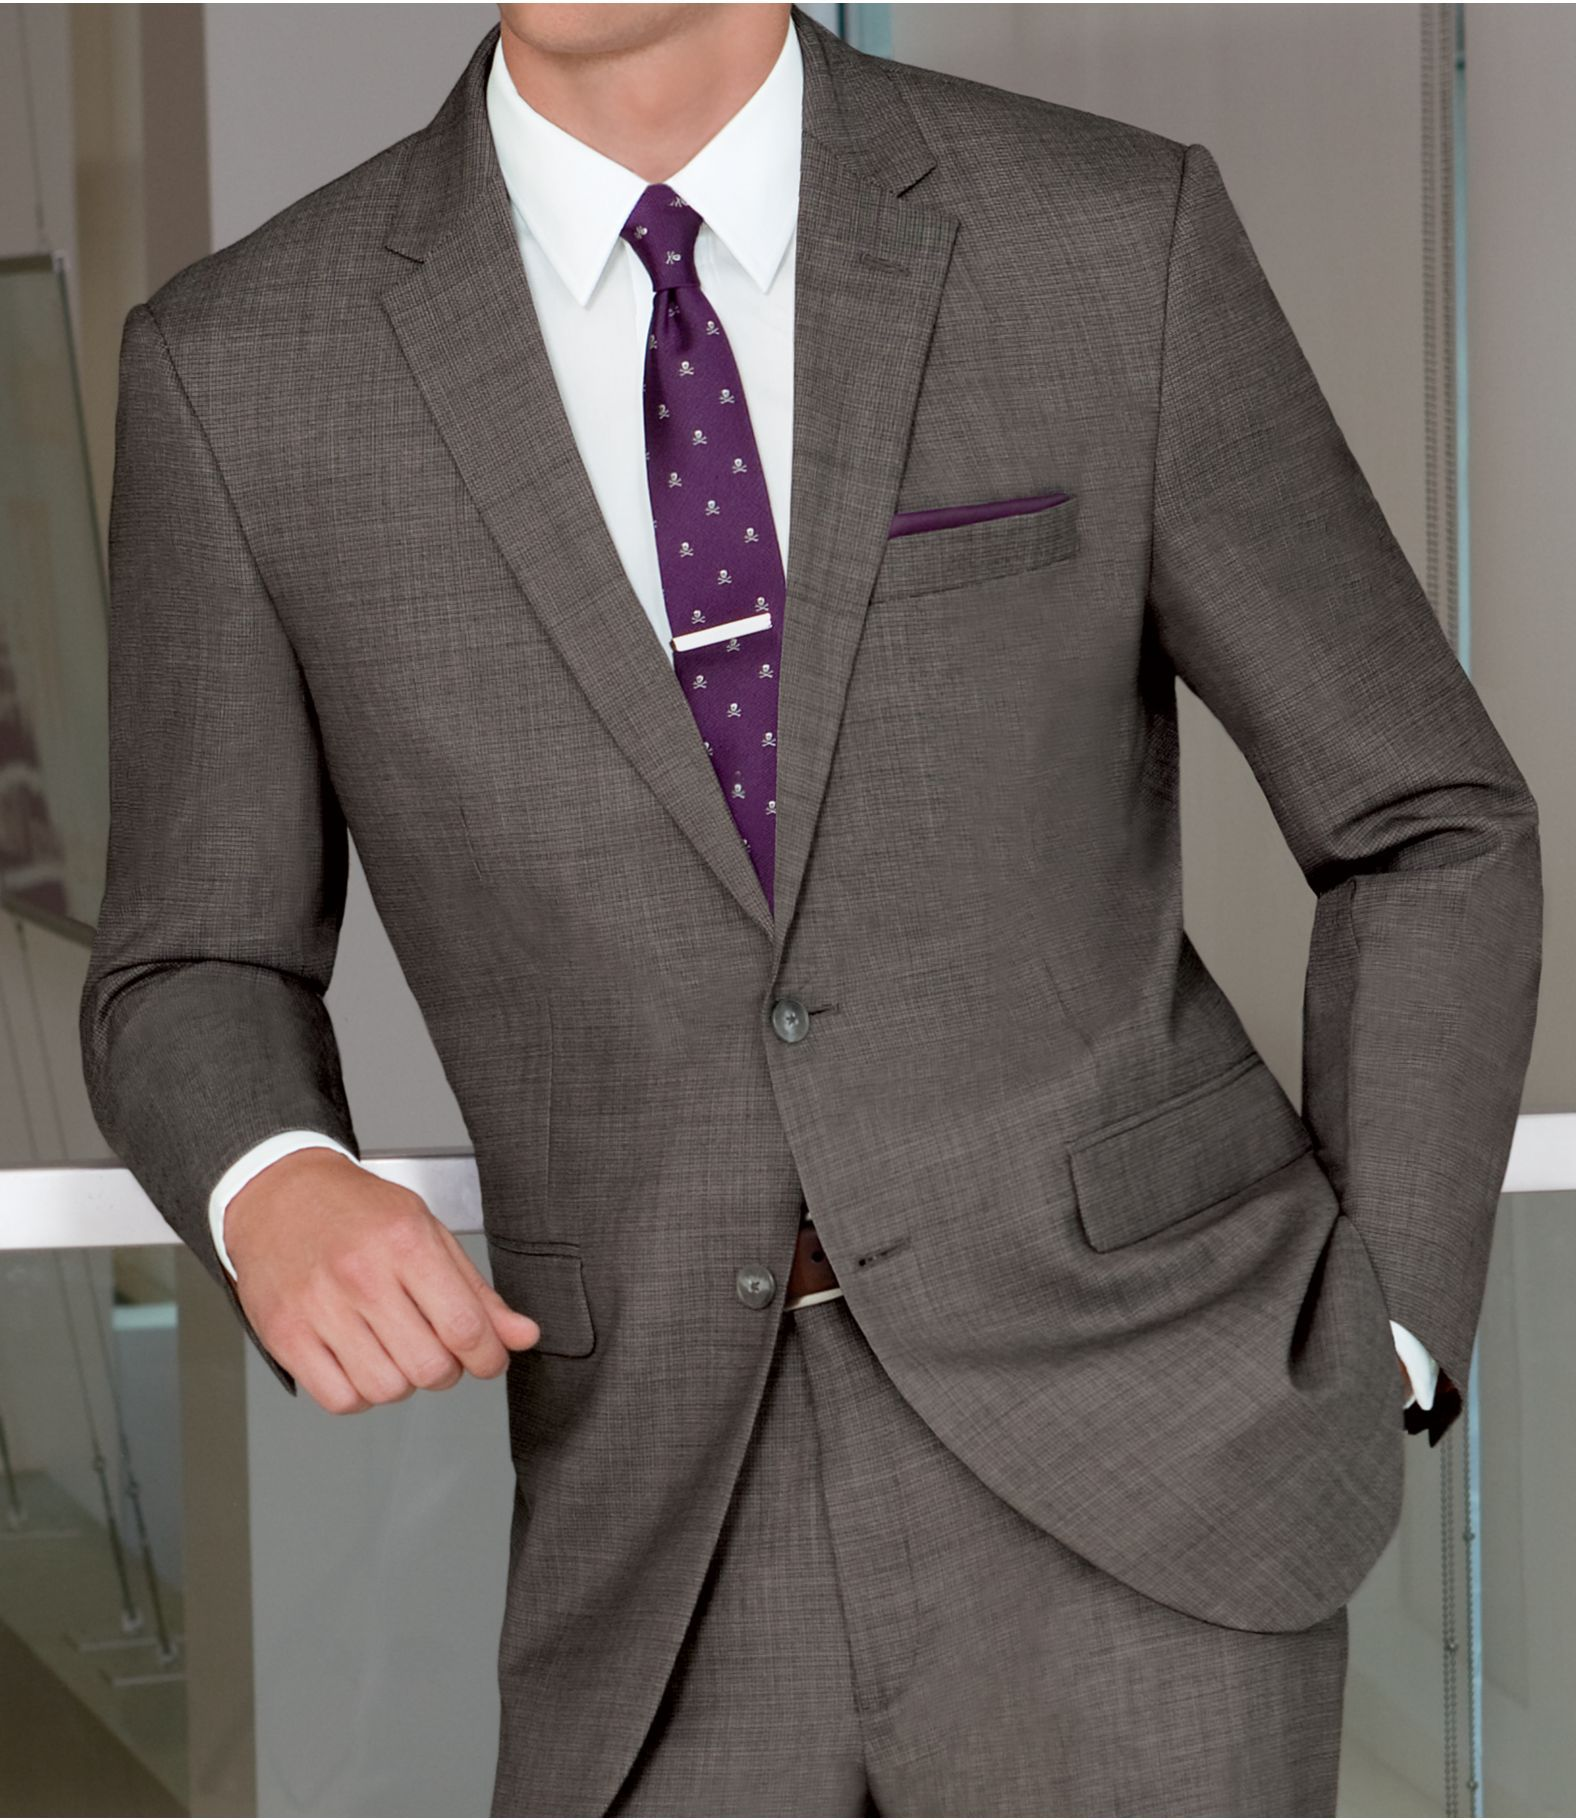 Joseph Slim Fit 2-Button Suits with Plain Front Trousers | FASH: M ...